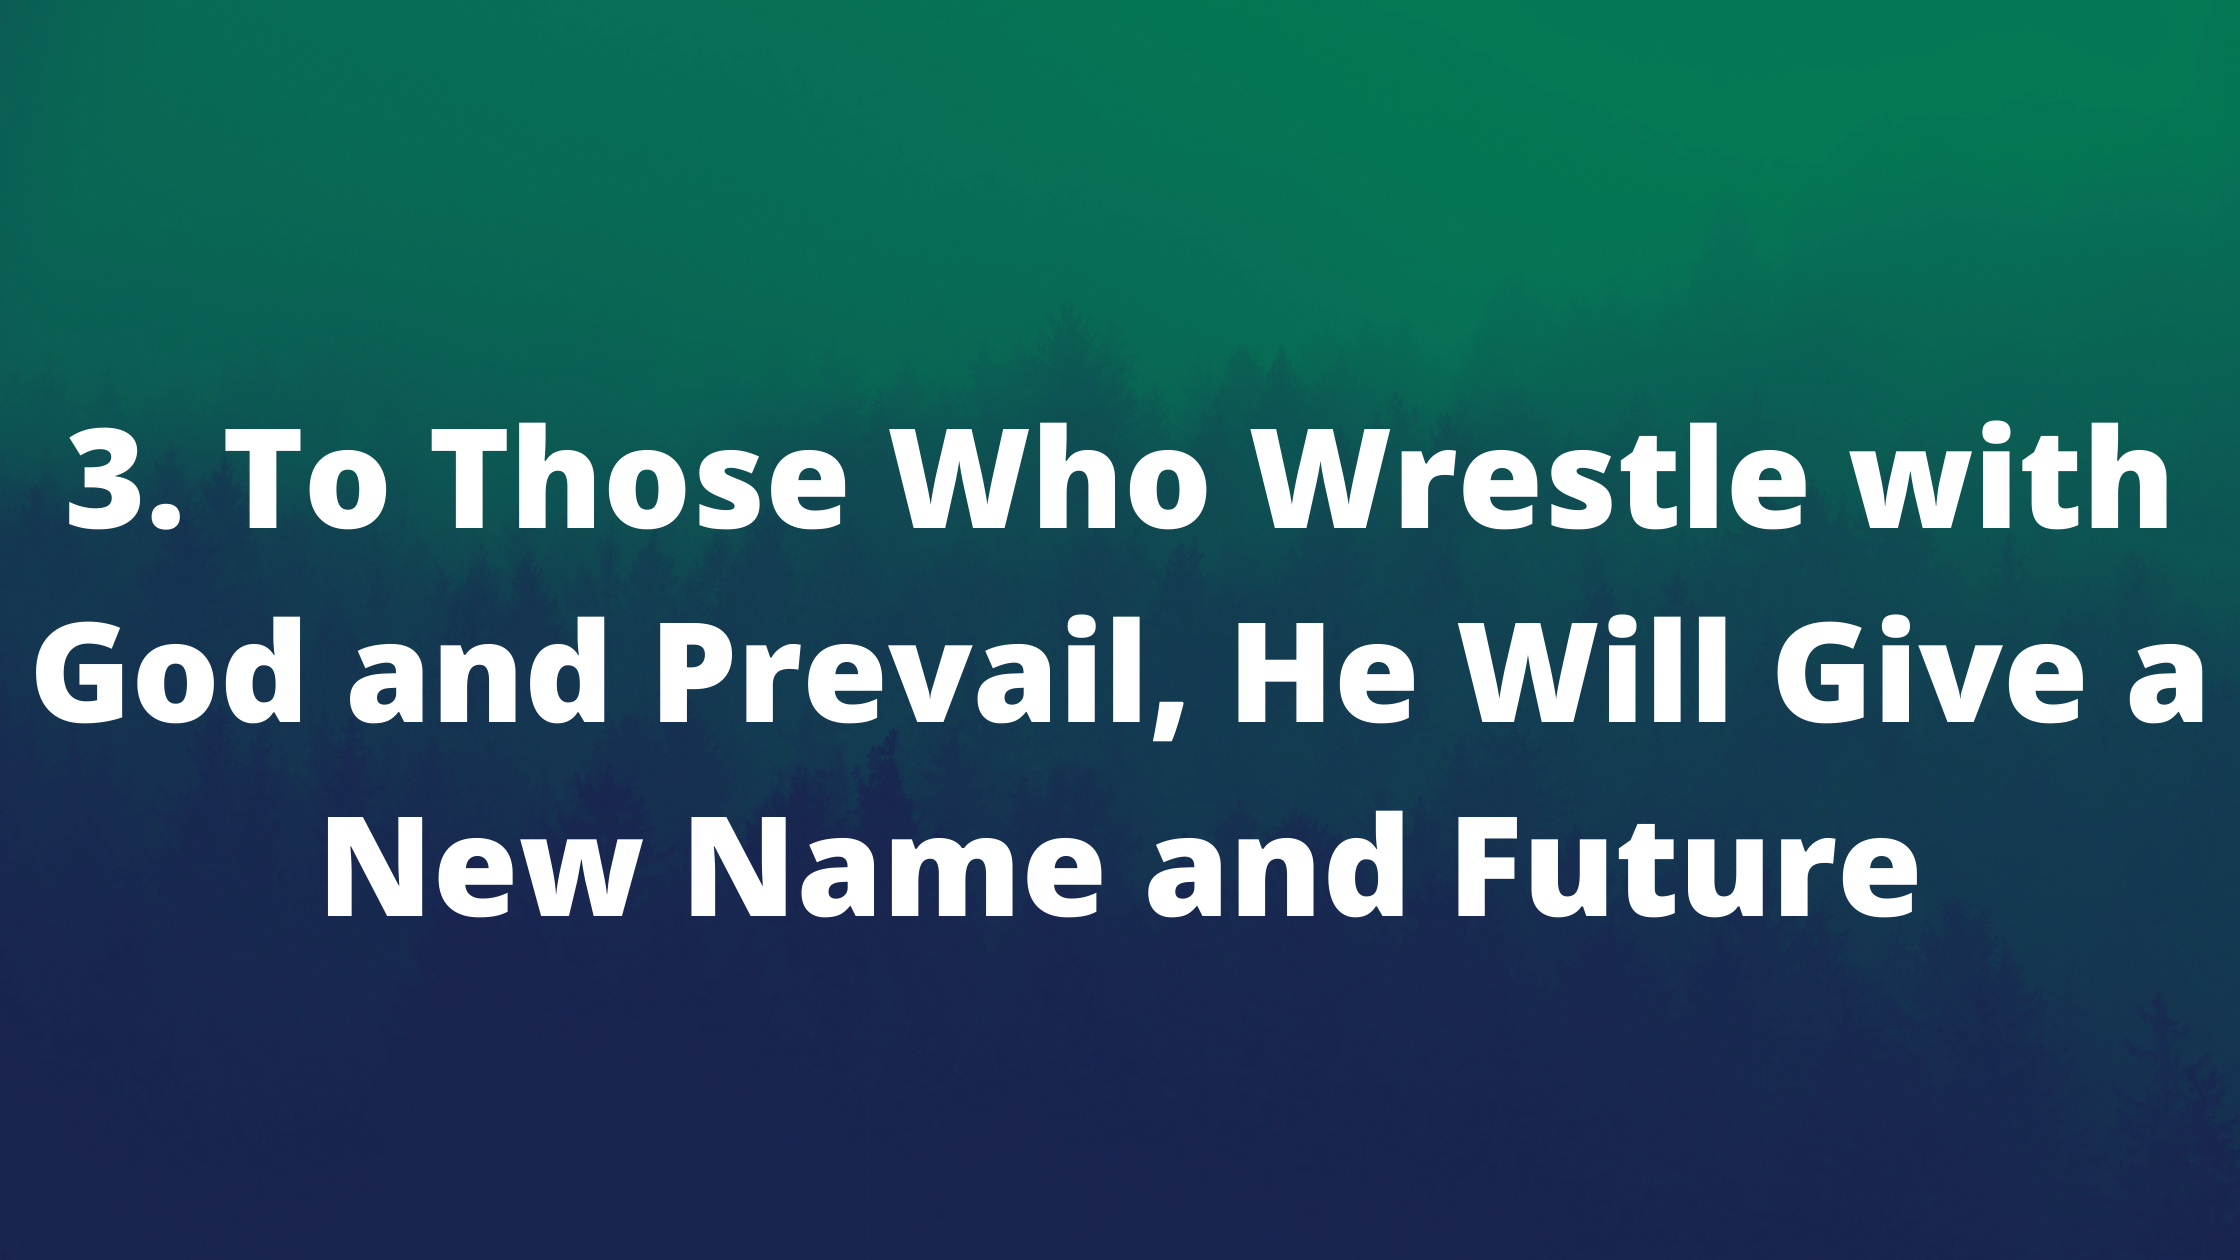 3. To Those Who Wrestle with God and Prevail, He Will Give a New Name and Future